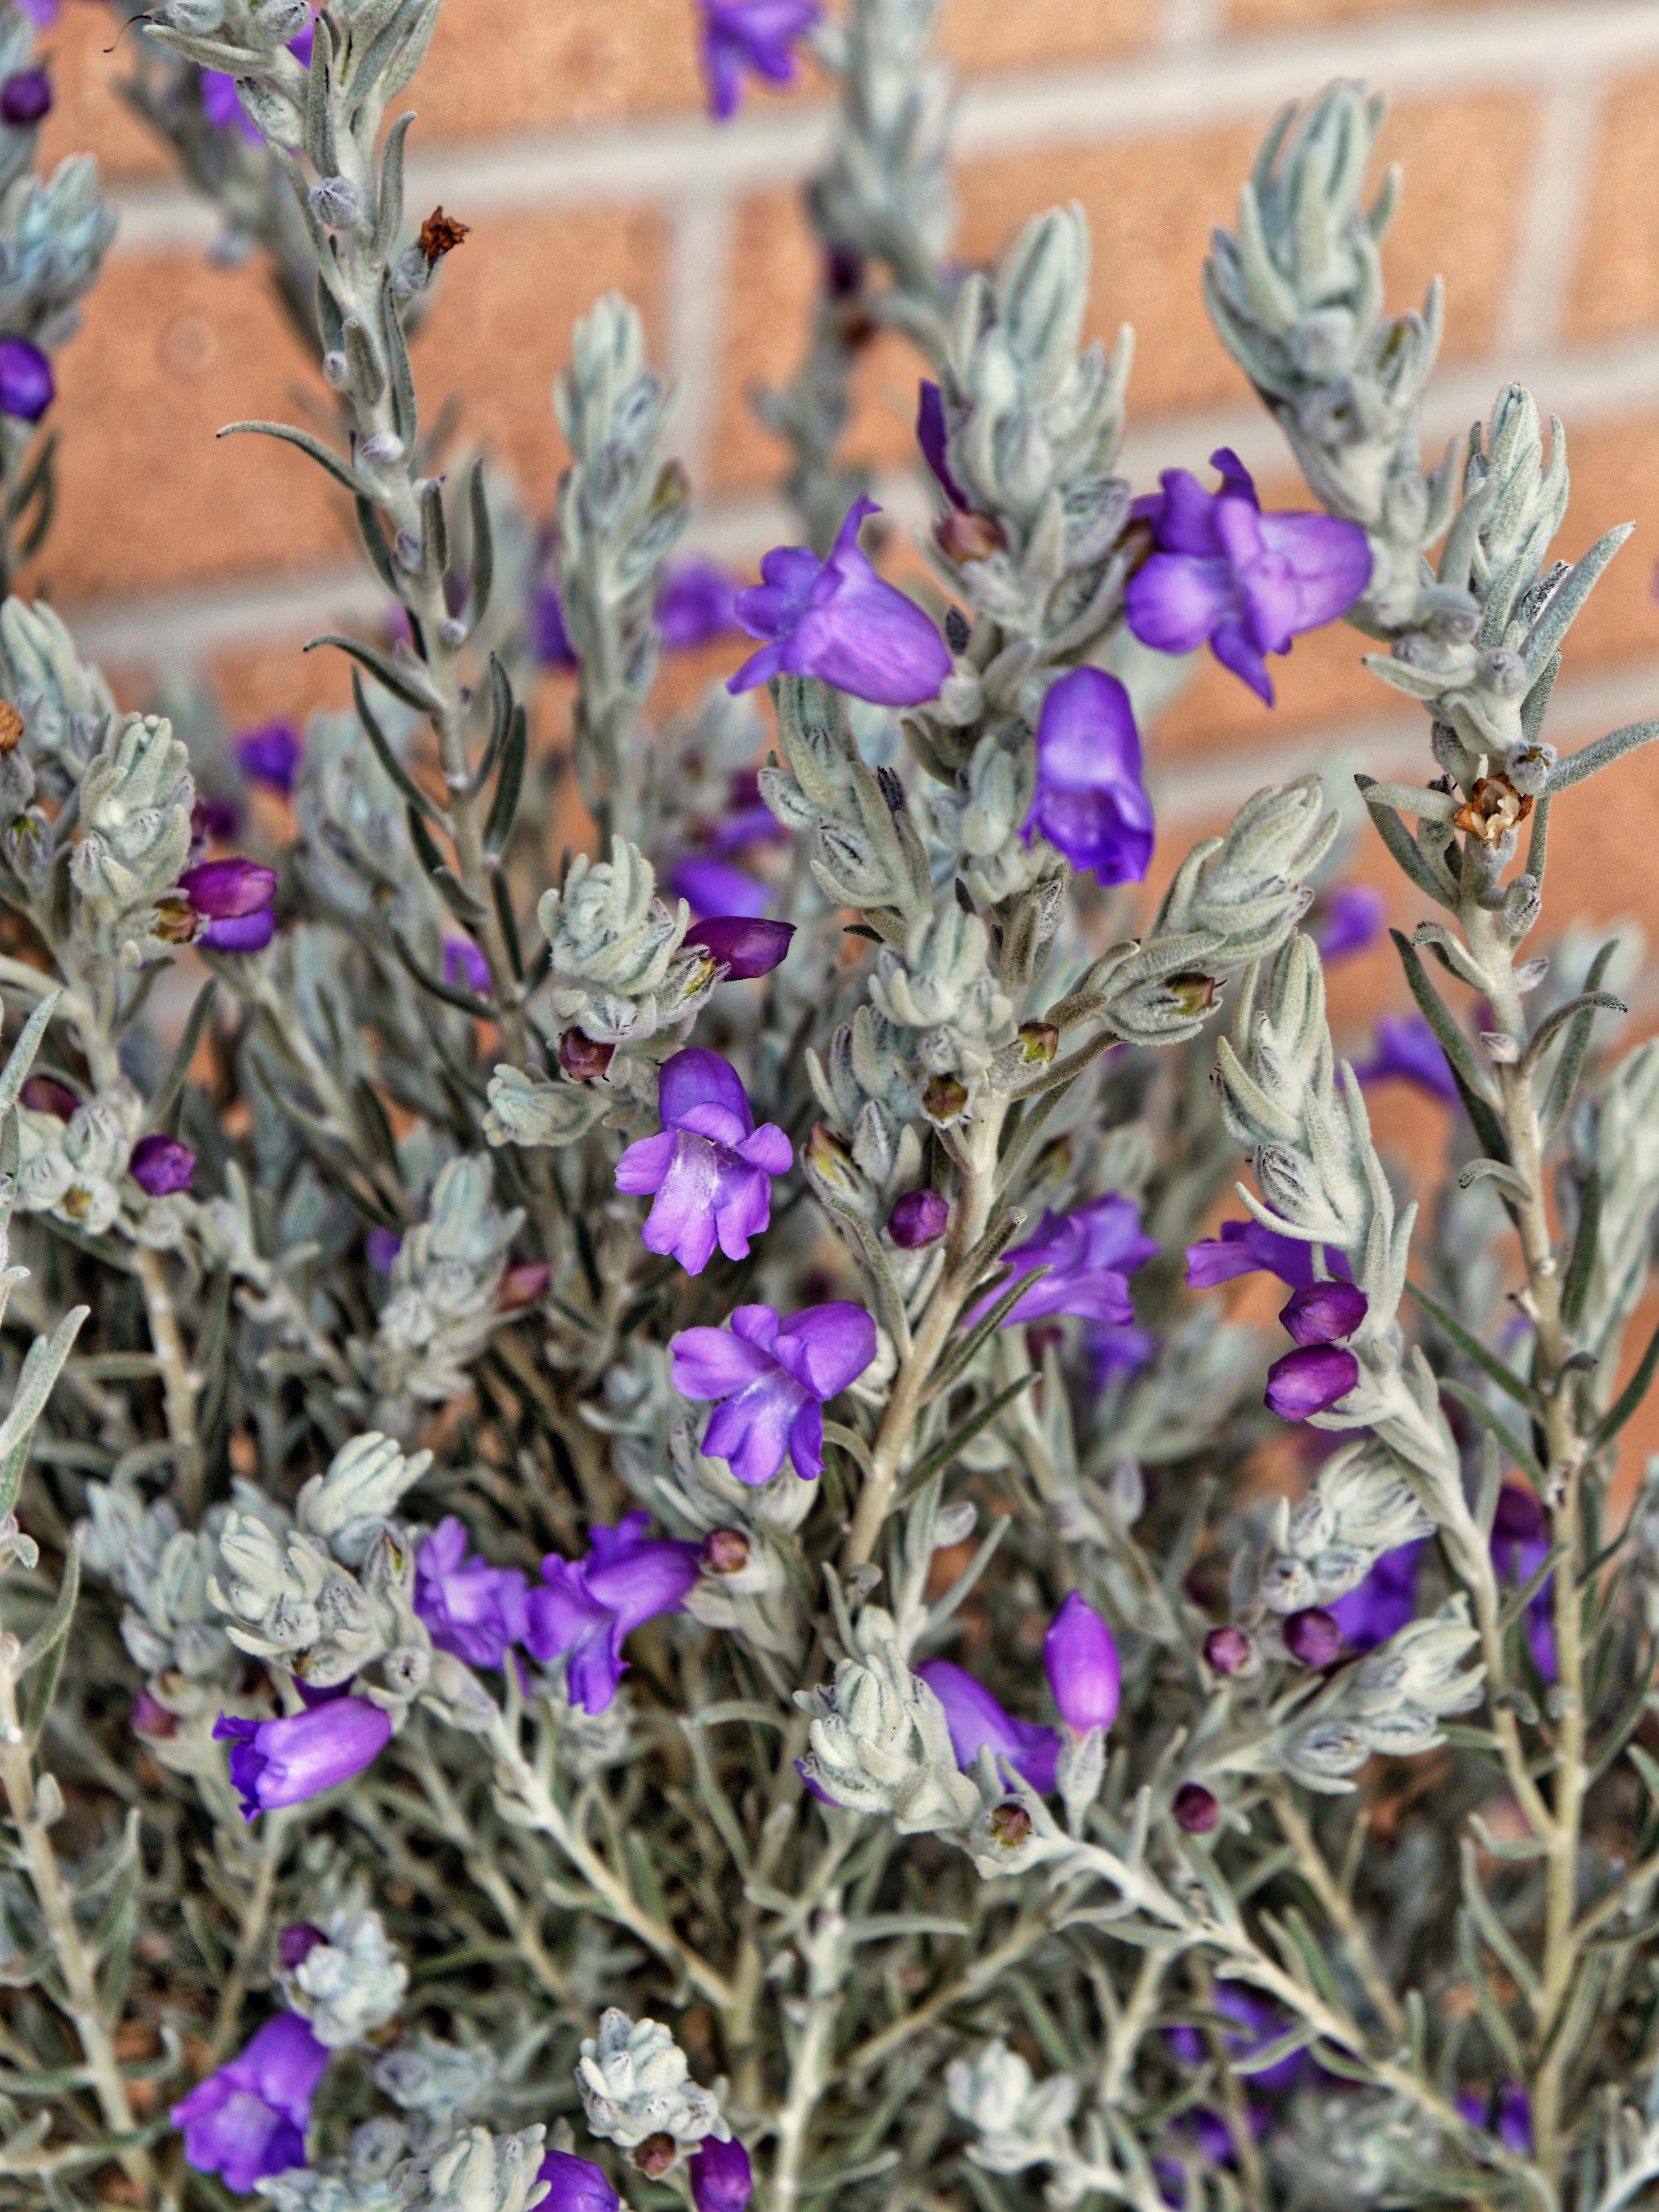 This should be Eremophila-nivea-2.jpeg.  Is it missing?